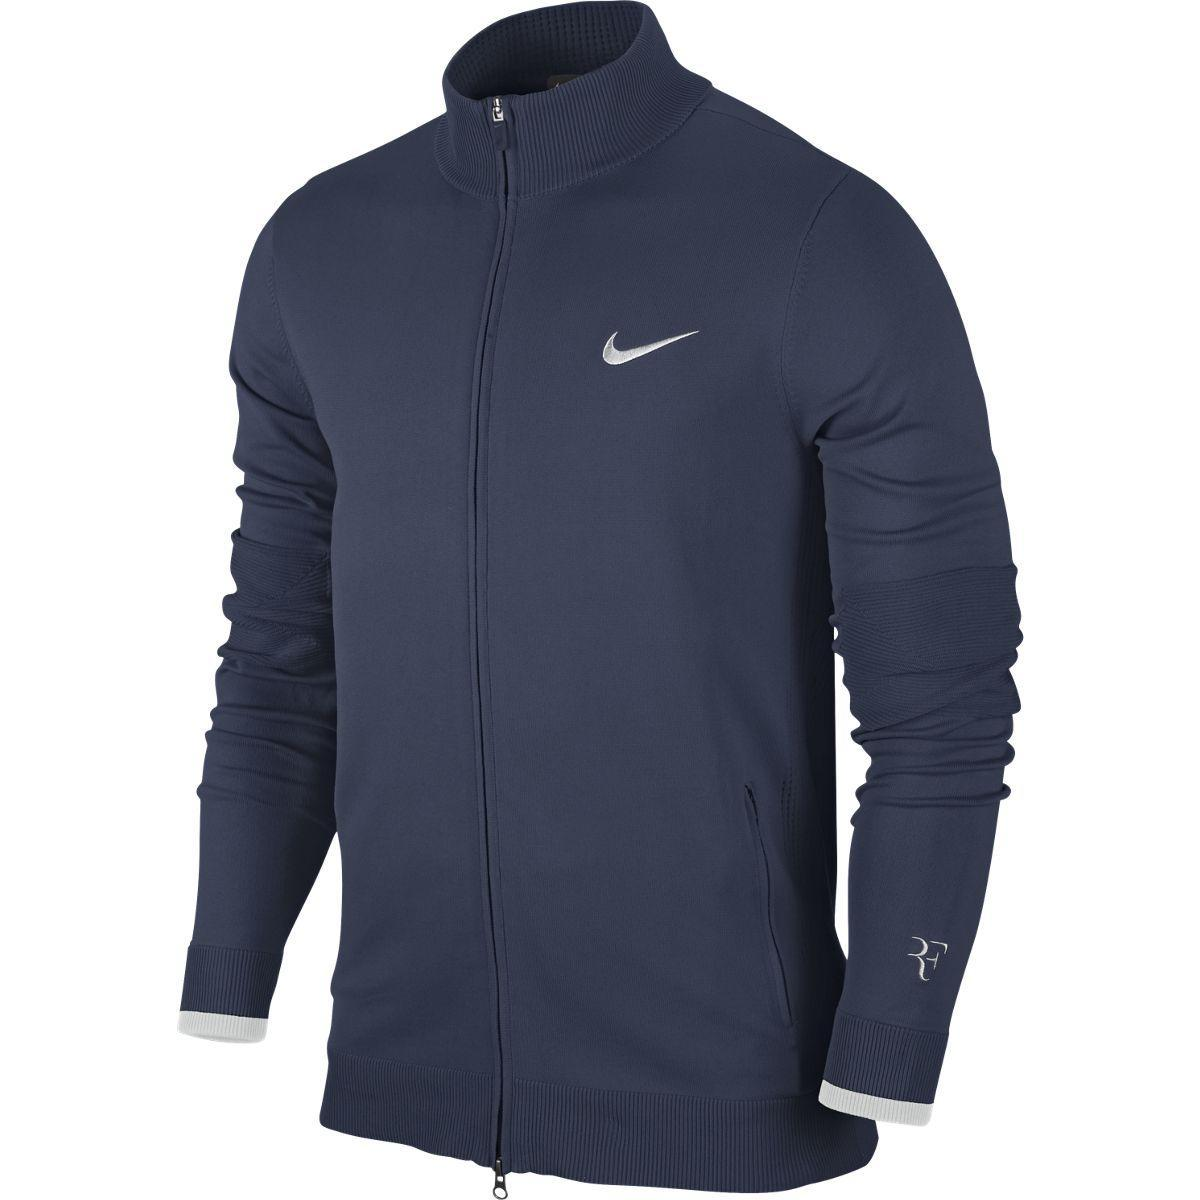 nike zip up jacket mens silver